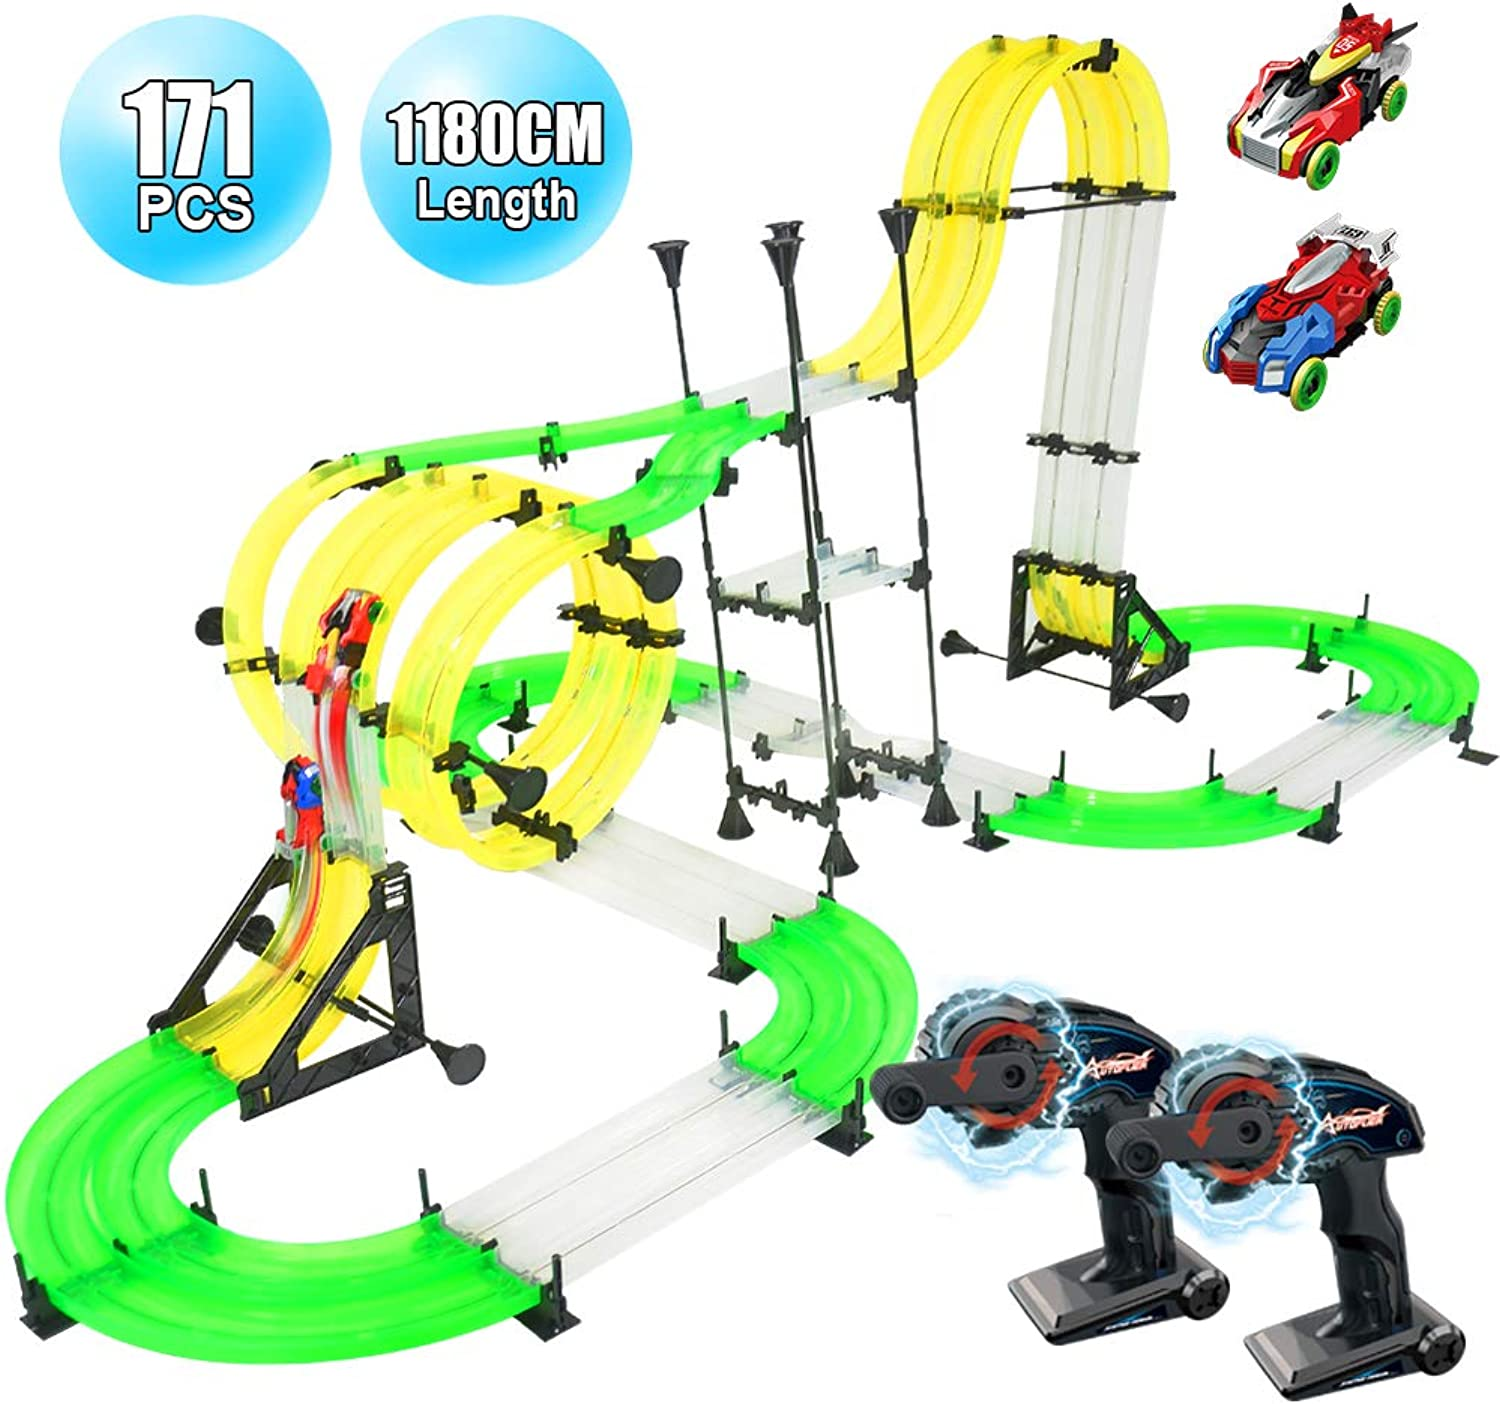 RC Car Race Track Set, Elec3 Racing Track Car Toys, 1180cm DIY Double Rail Car Race Track Set, 2 Cars, 2 HandOperated Controllers, 3D Super Track Car Playset for Birthday Party Festival Gift